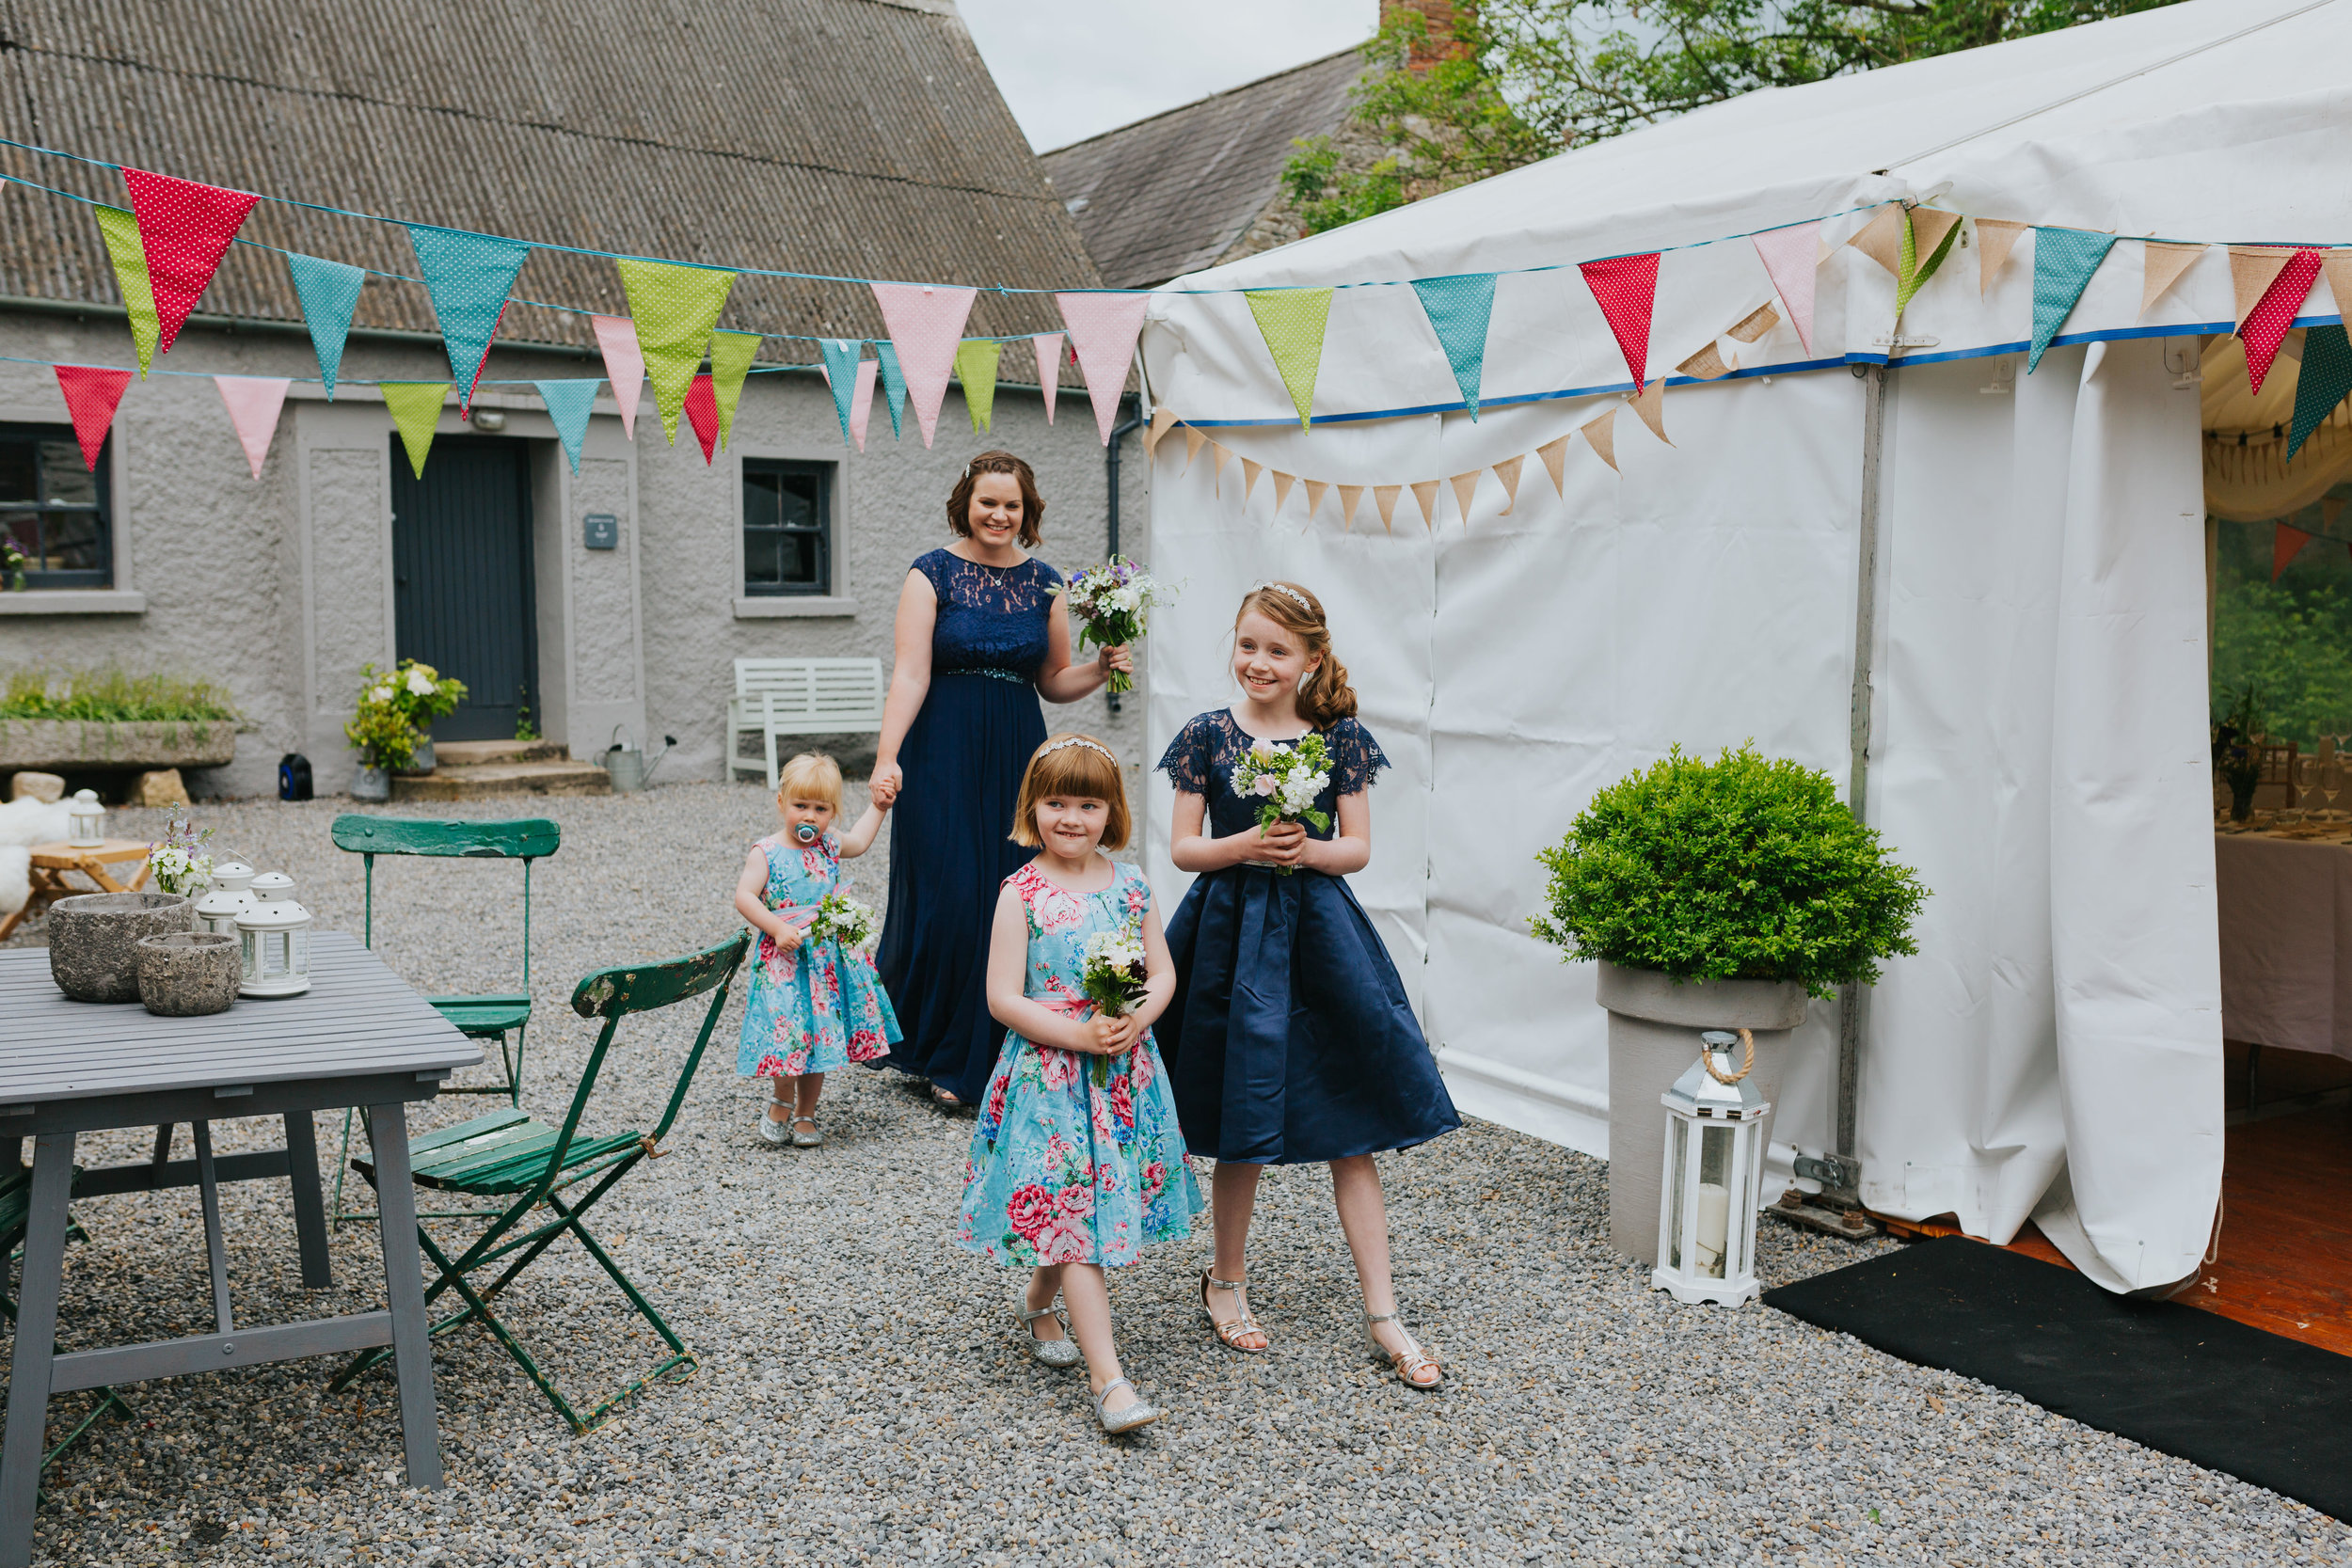 e+t_ballilogue_kilkenny_wedding_photographer_liviafigueiredo_81.JPG